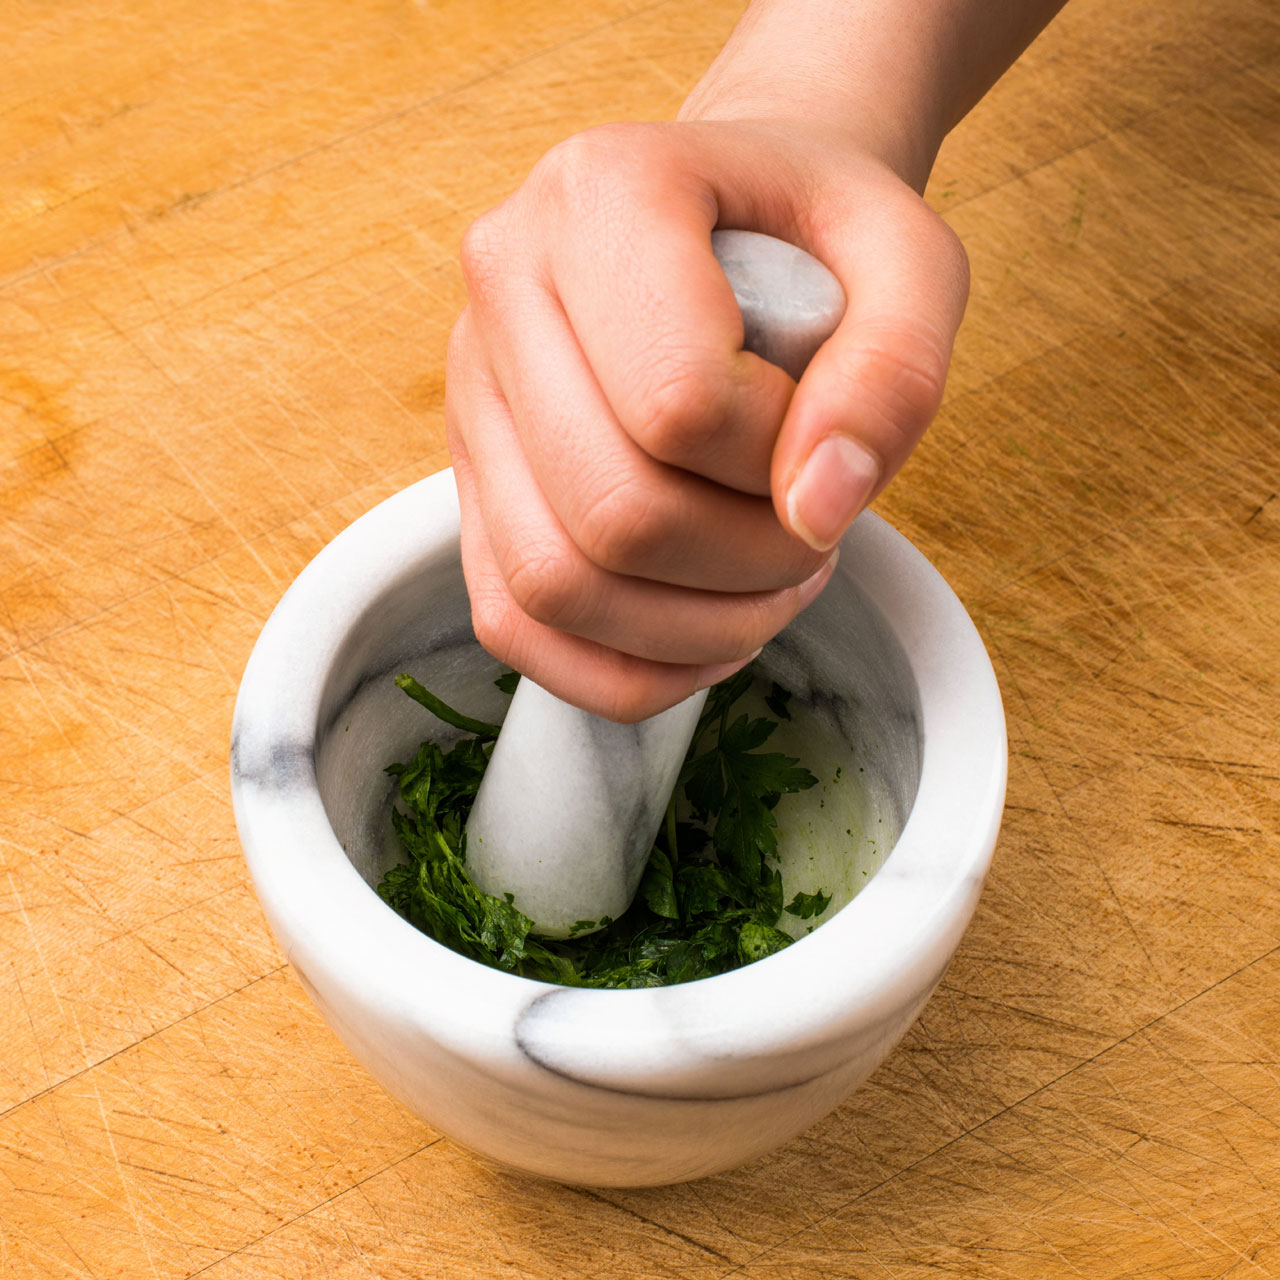 Kitchen Marble Chopping Board Mortar And Pestle Herbs